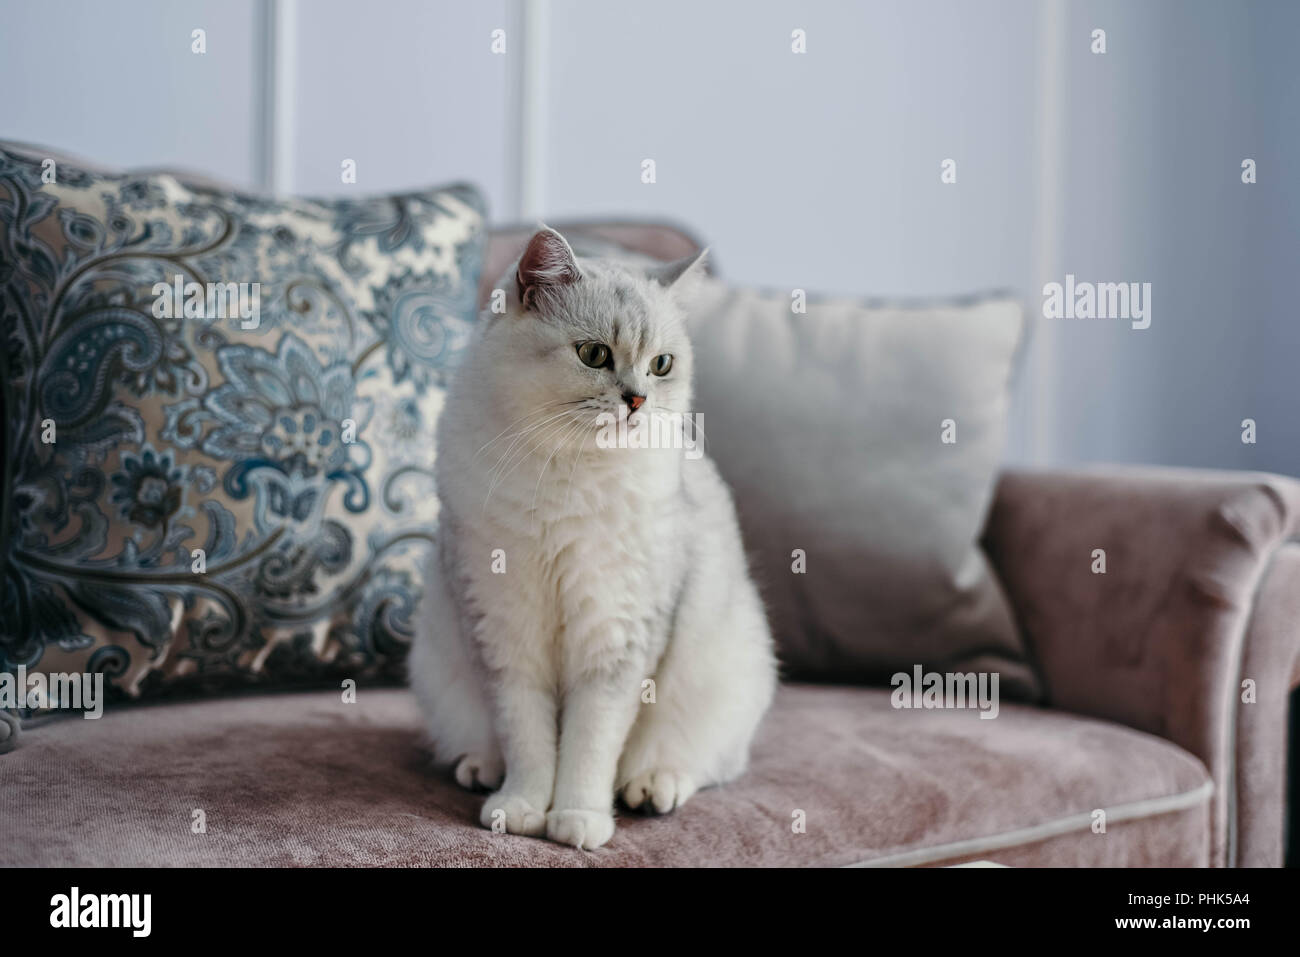 beautiful white grey cat on cauch in classic french home decor near rh alamy com Classic Room Decor Vintage French Country Decor